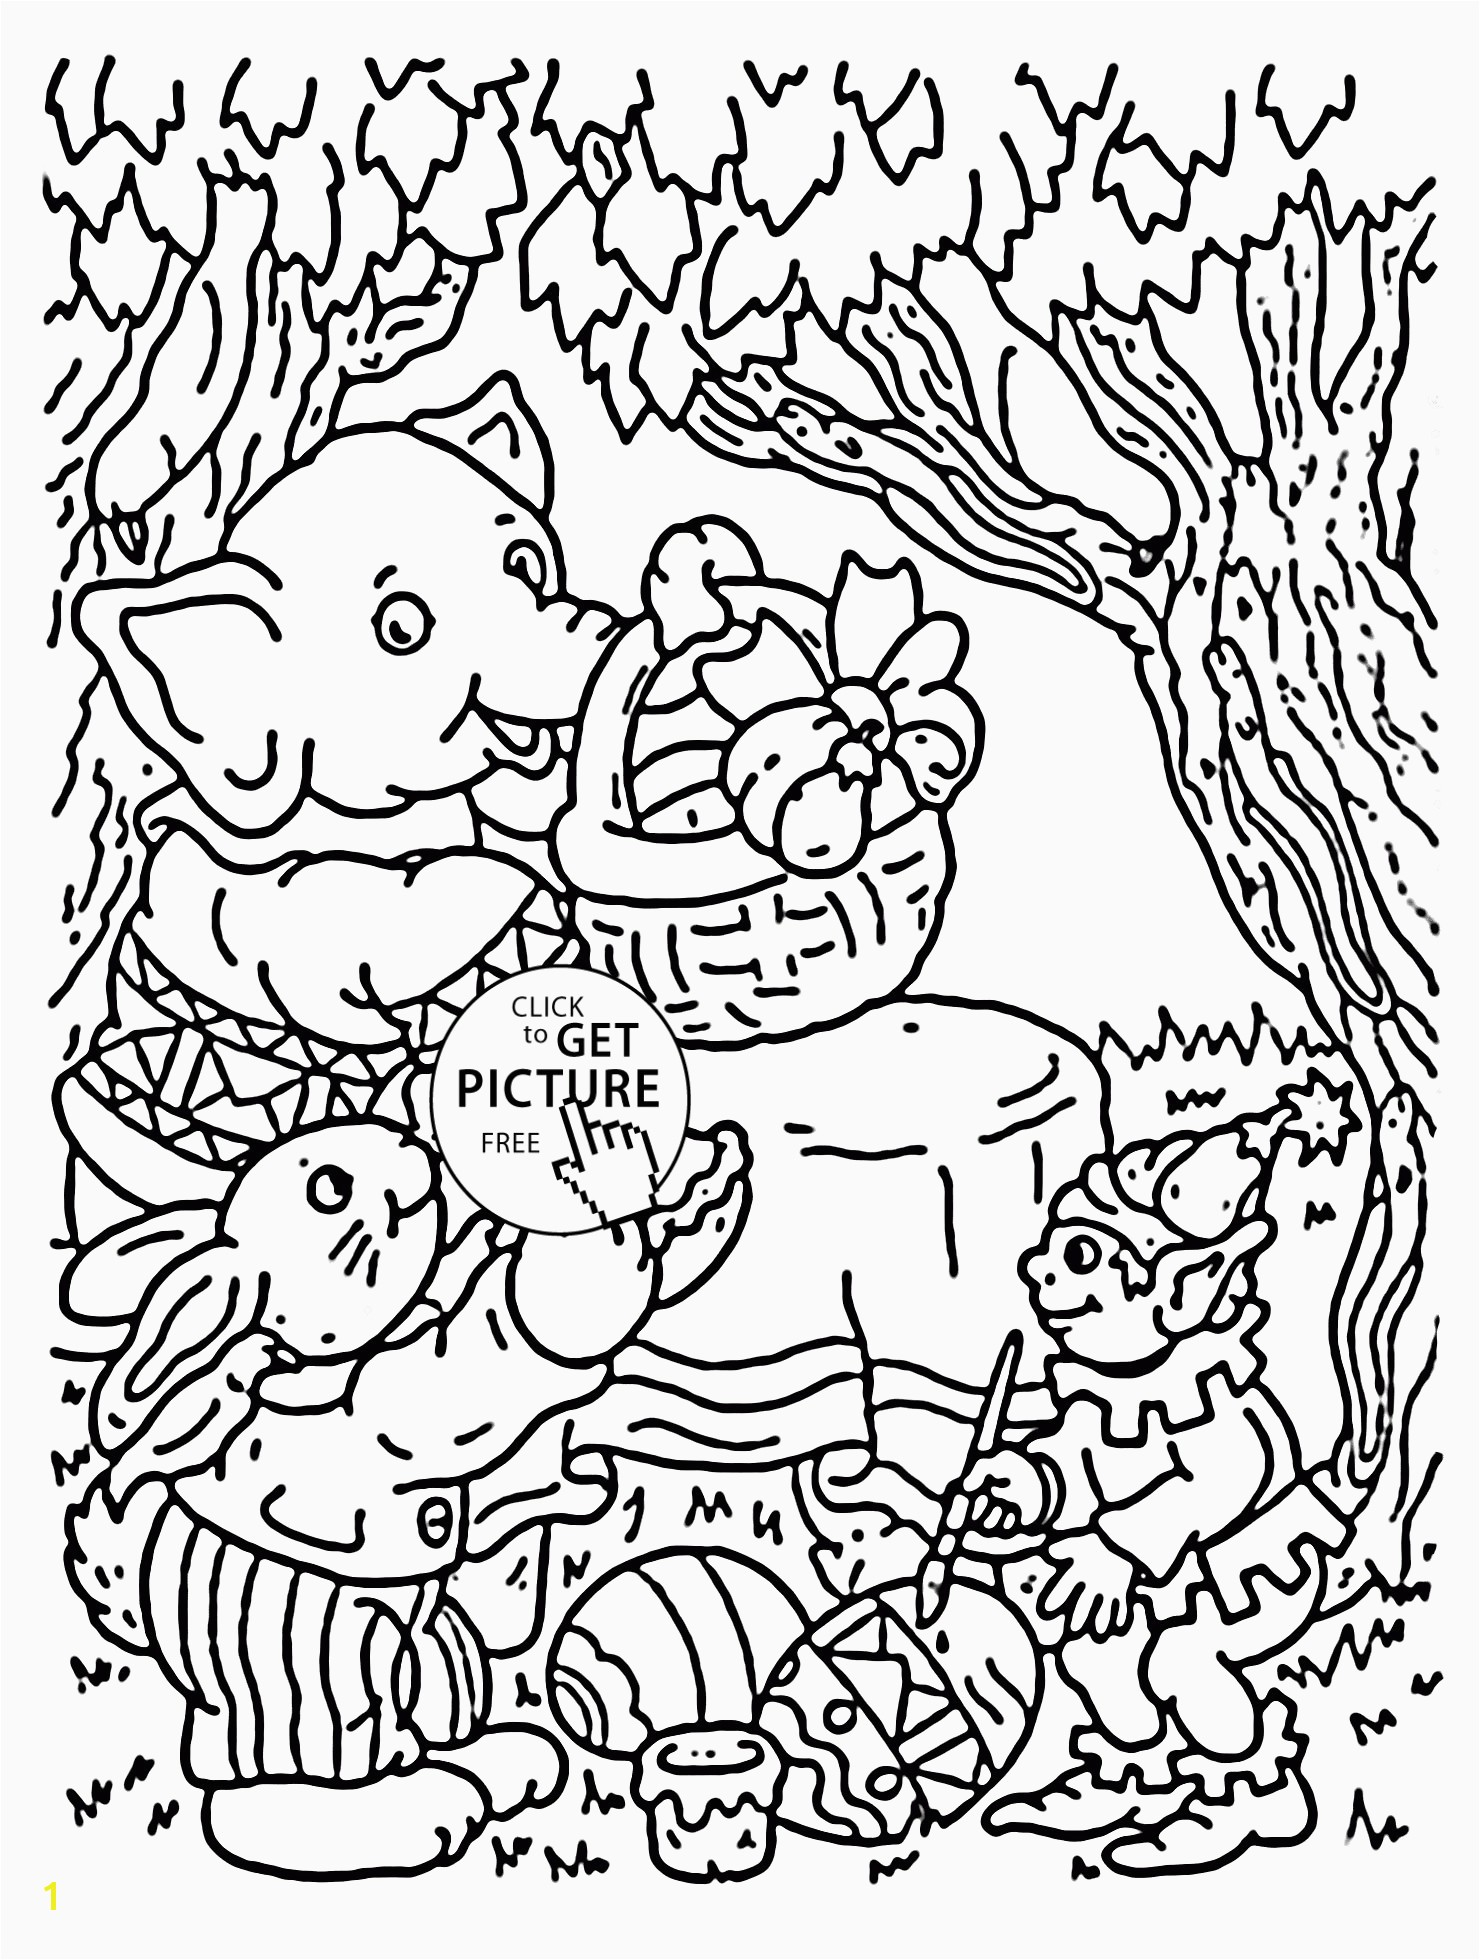 Mermaid Coloring Page Inspirational Print Coloring Pages Luxury S S Media Cache Ak0 Pinimg originals 0d